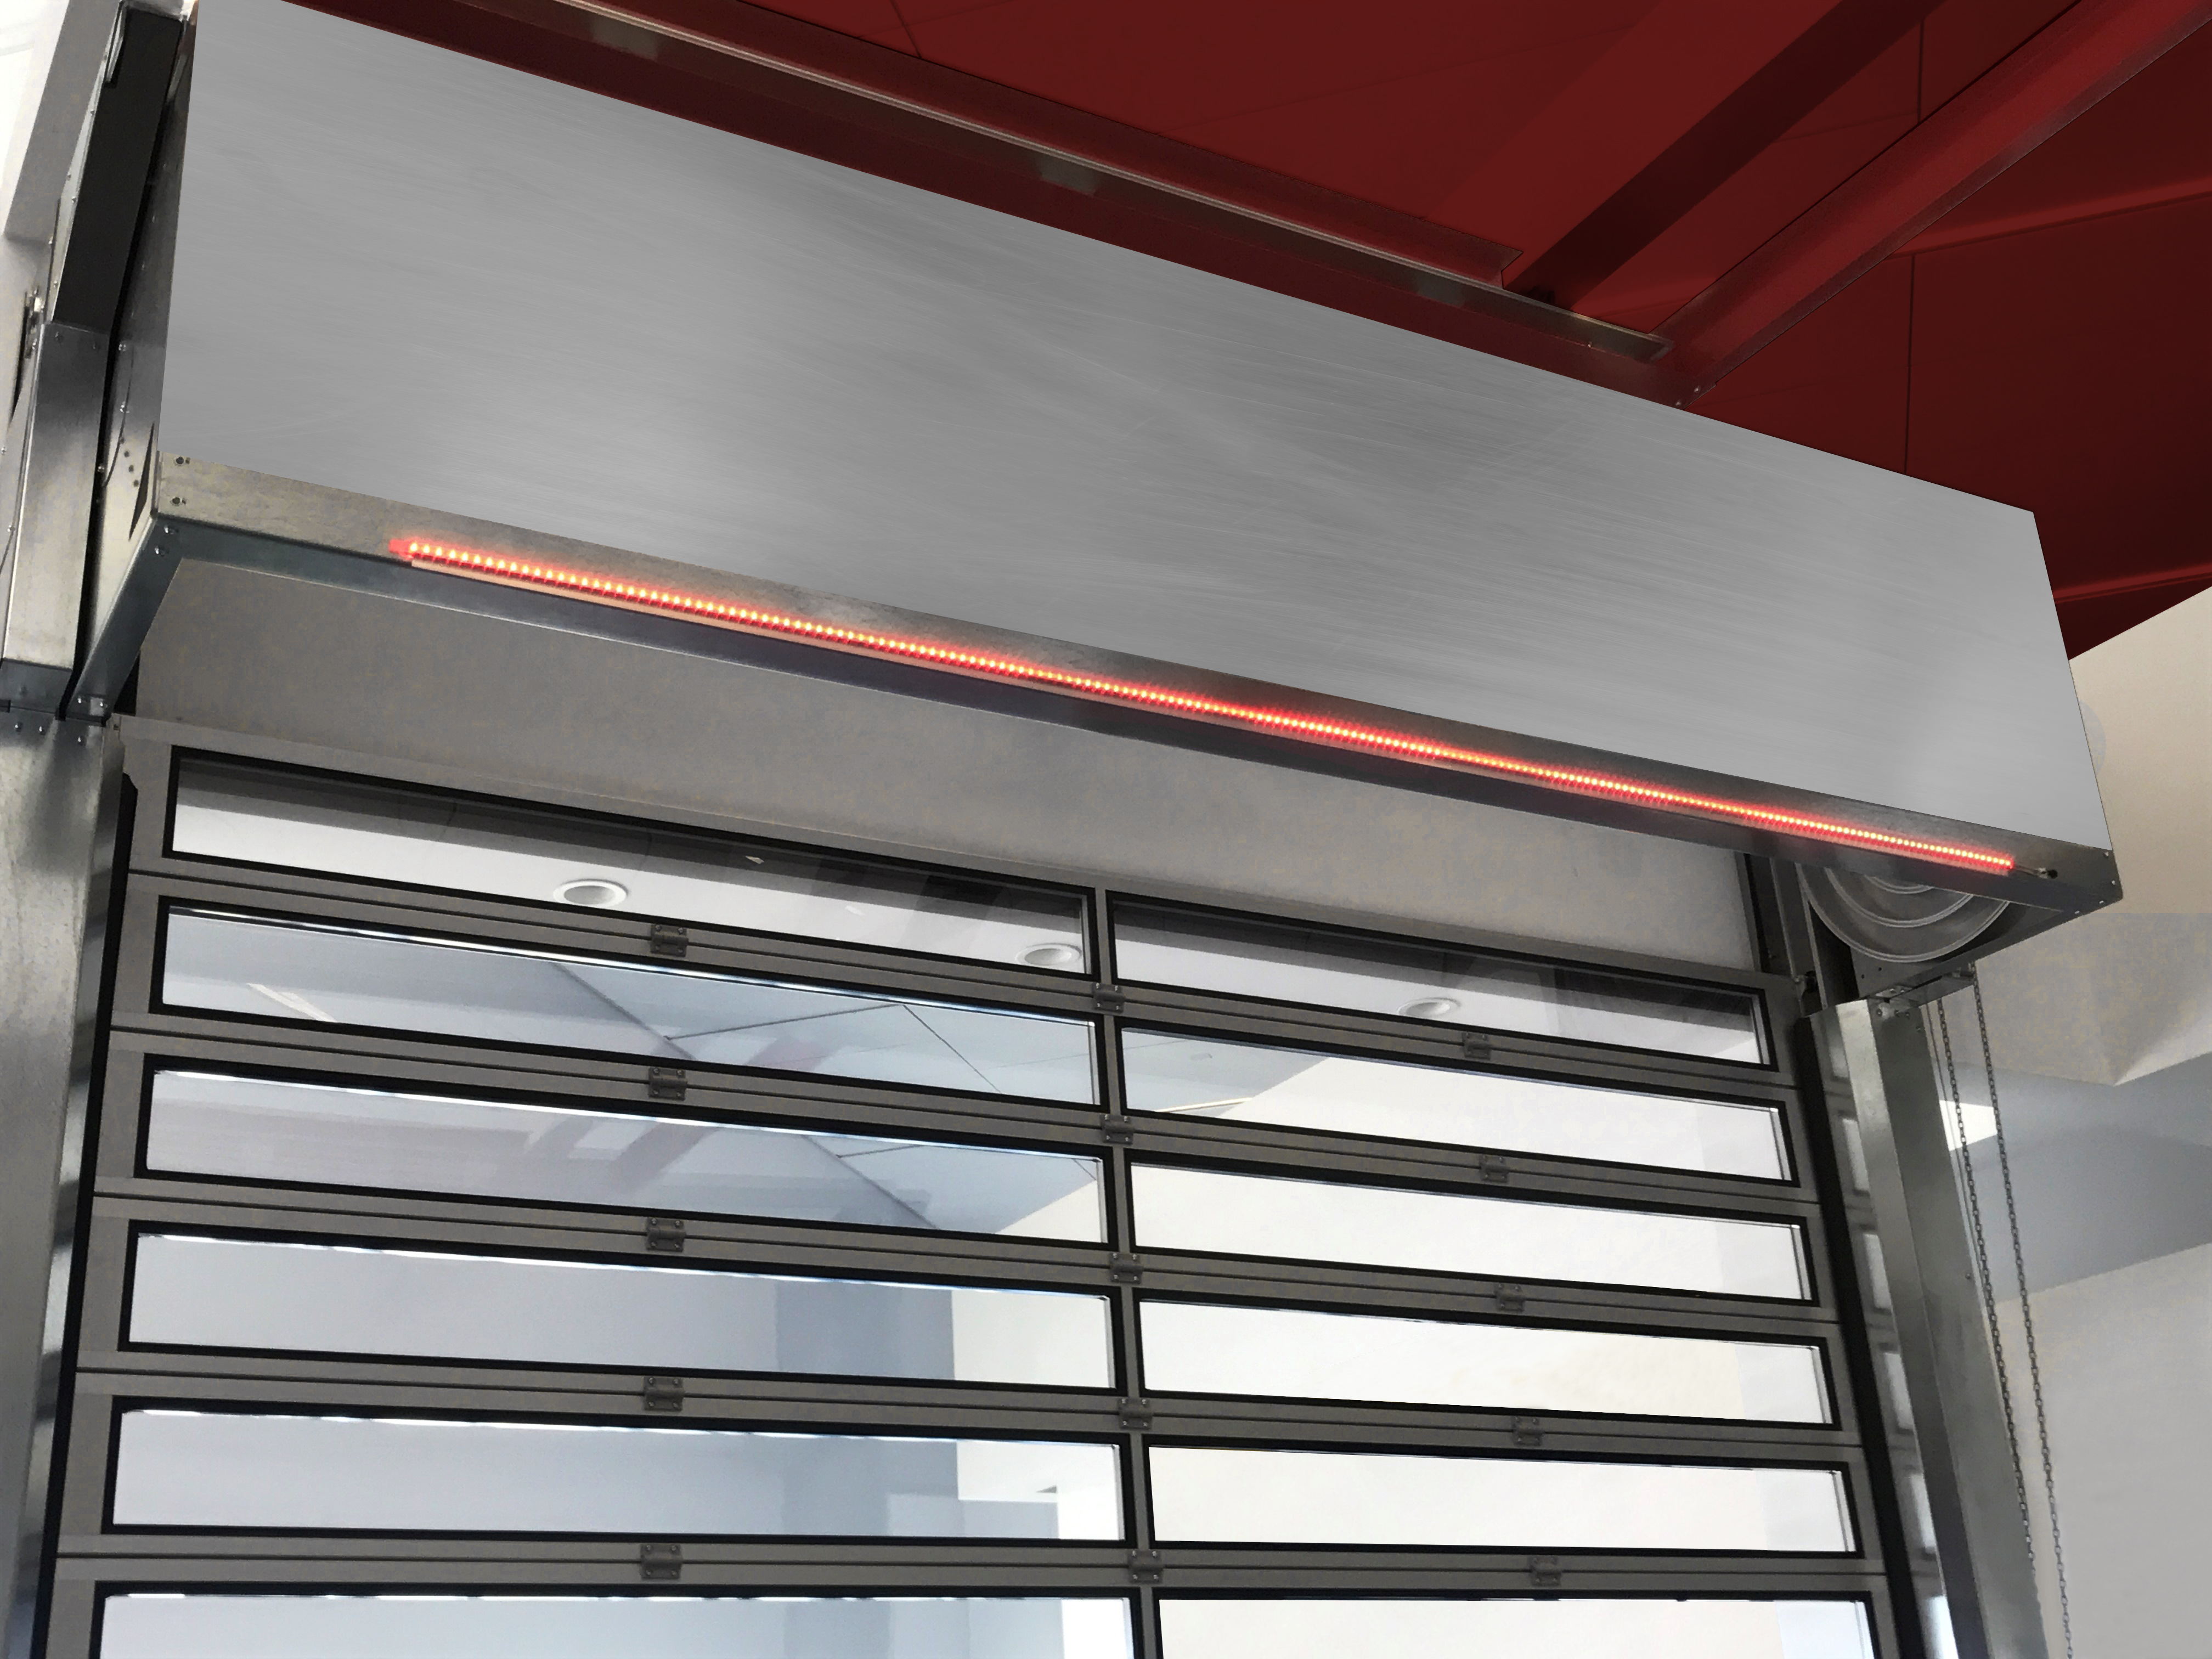 The LED Lite Advance Door Monitoring System Was Recently Introduced By  Hörmann High Performance Doors As An Available Option For All Of Their High  ...